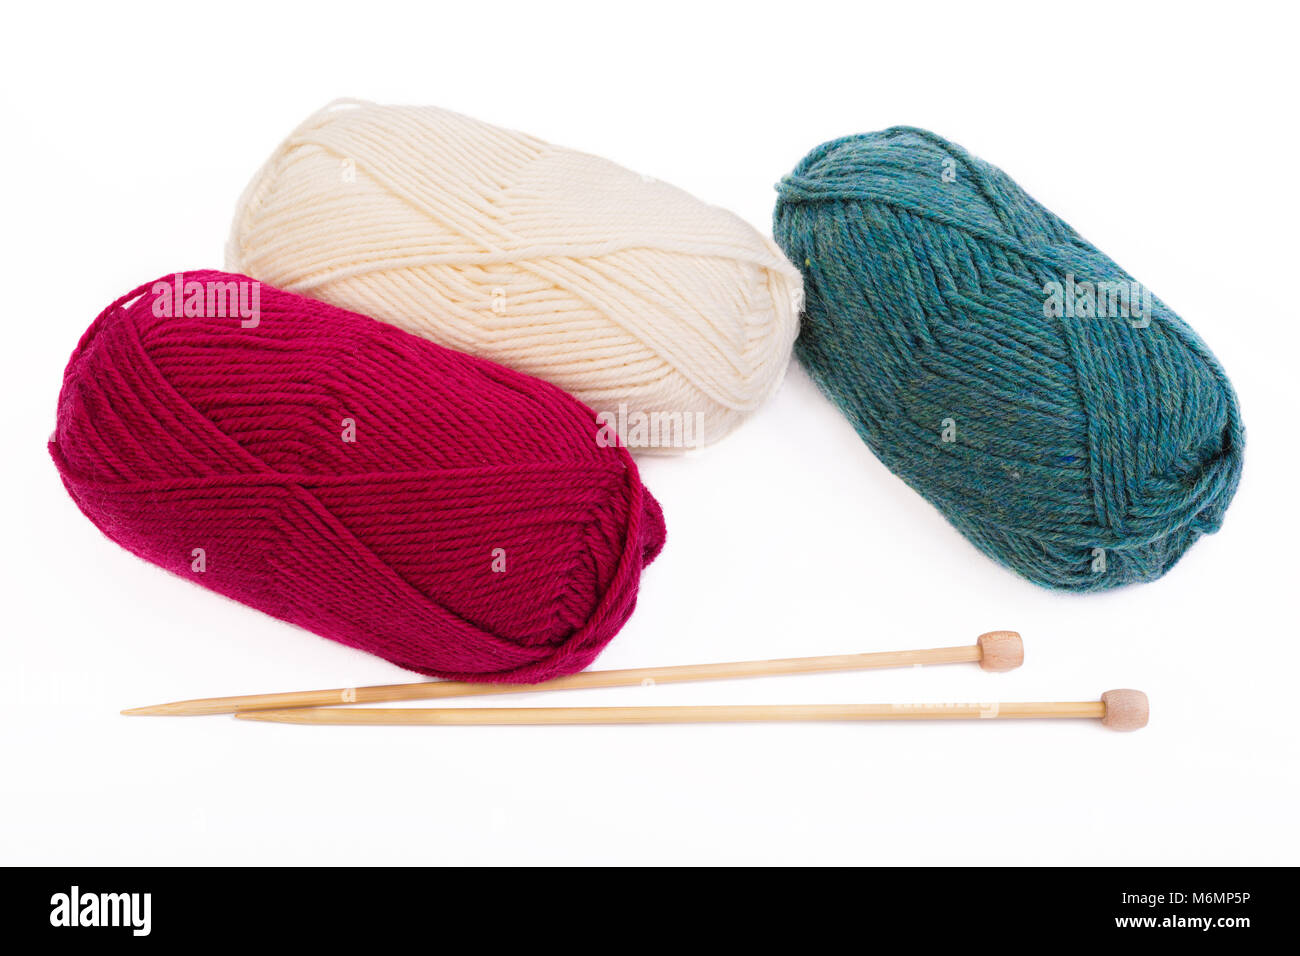 Balls of yarn and wooden knitting needles on white. - Stock Image